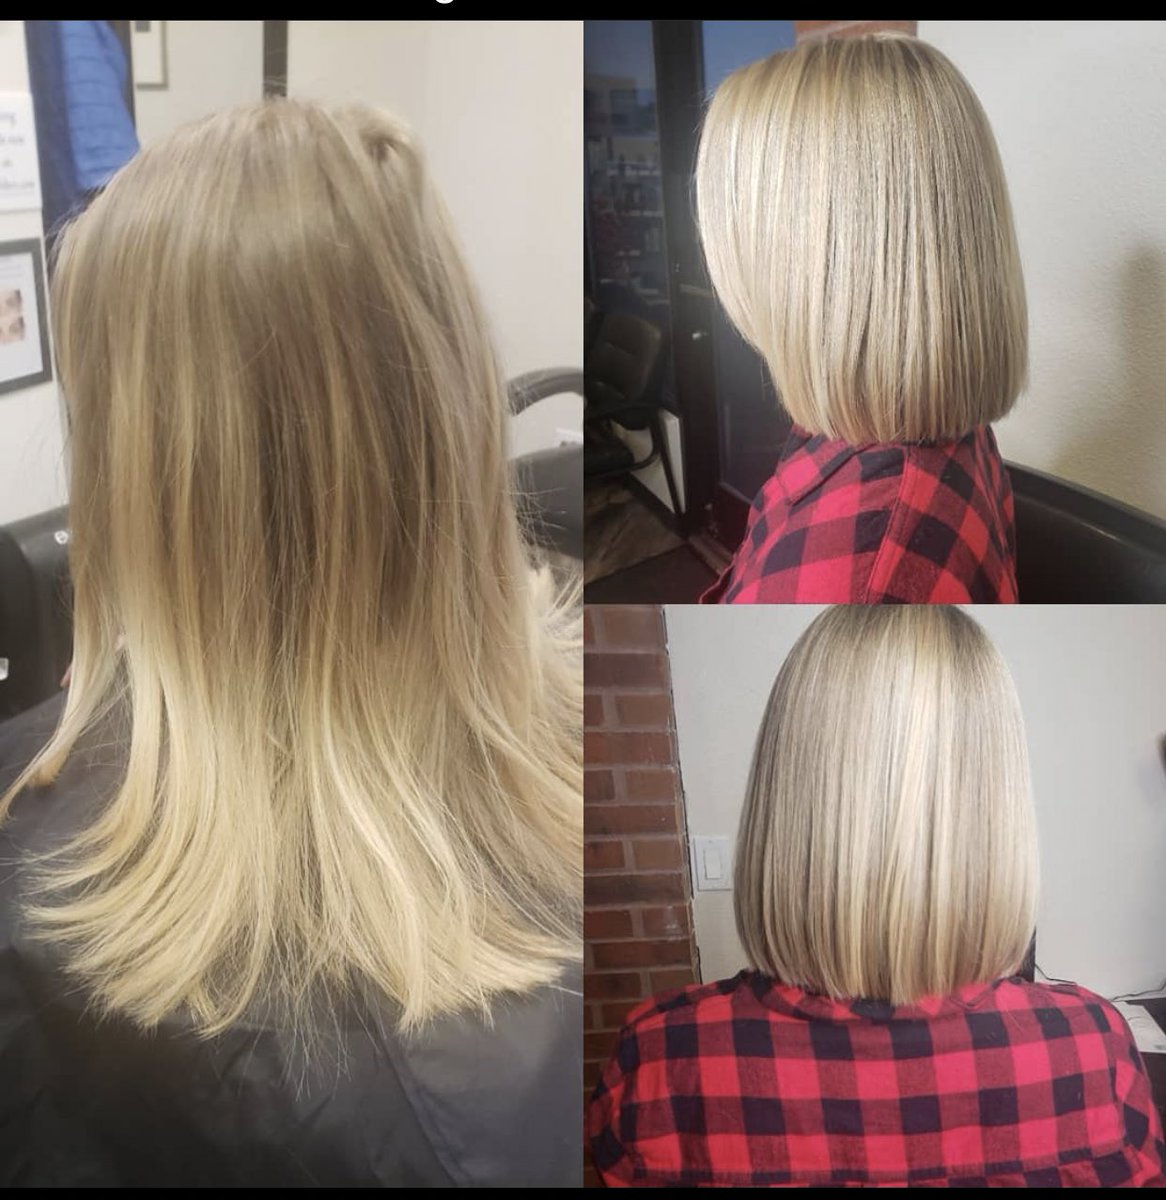 Schedule your #LongBob with Monica at http://HairLoungeGolden.com or call 303.278.1386 #longbobhair  #avedartists #avedacolor #avedahair #avedasalon #thehairloungegolden #modernsalon #behindthechair #303hair #303hairstylist #beforeandafterhair  @monica_loves_avedapic.twitter.com/28mnCfavtt – at The Hair Lounge